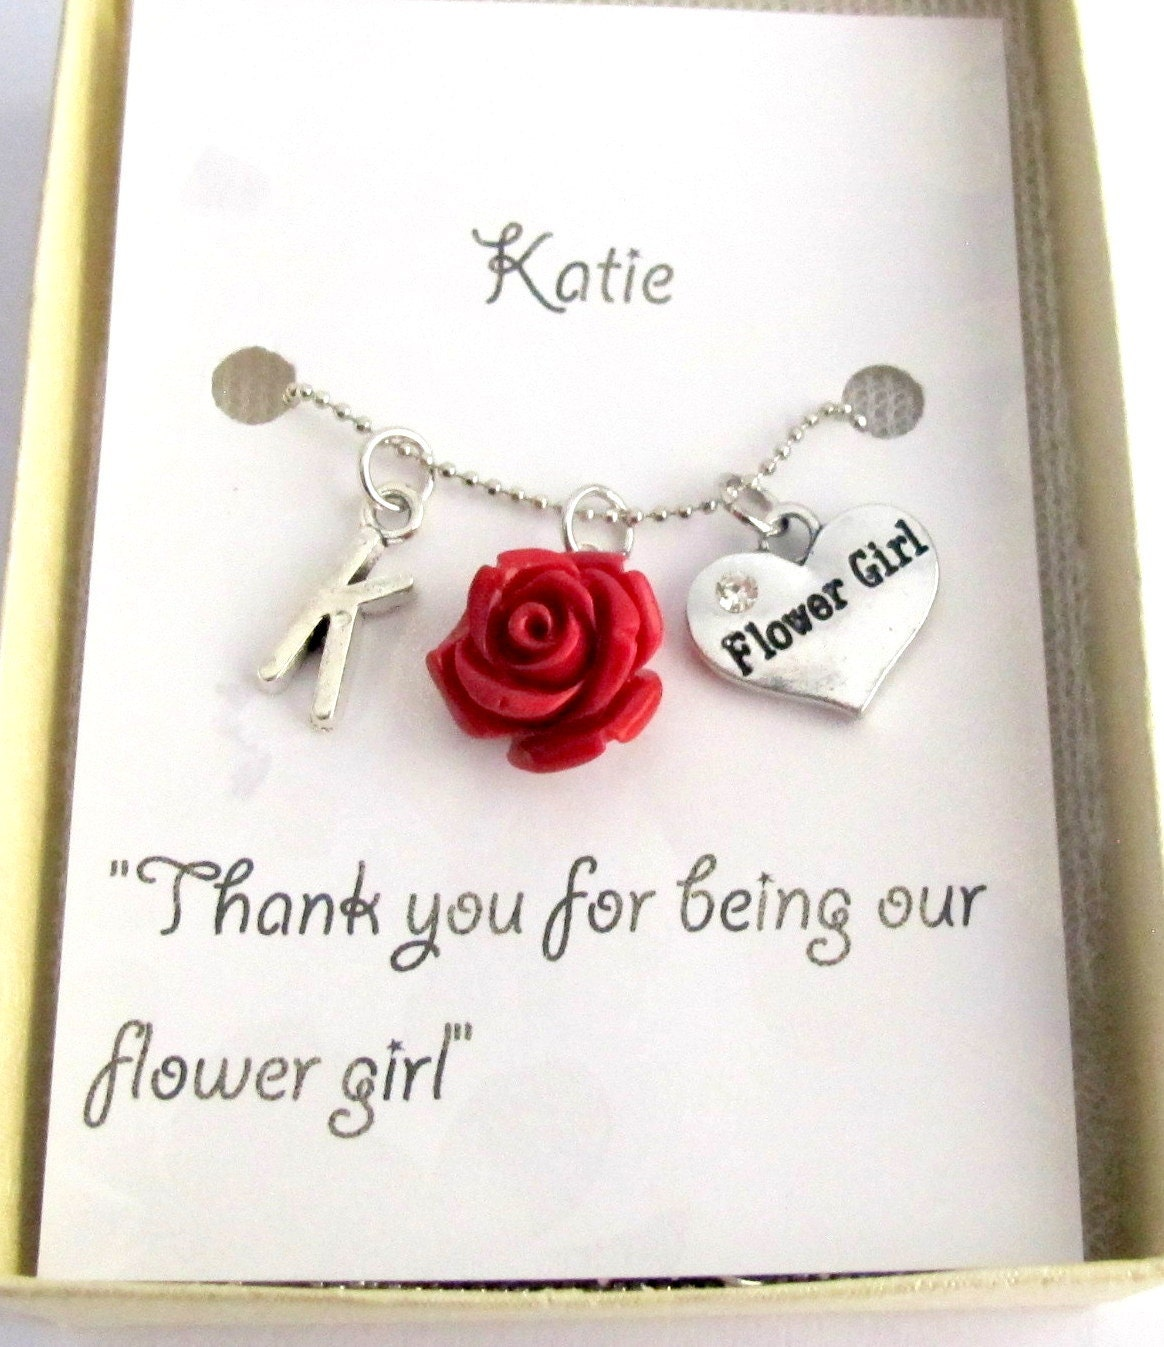 Flower Girl Wedding Gifts: Personalized Flower Girl Necklace, Wedding Gifts